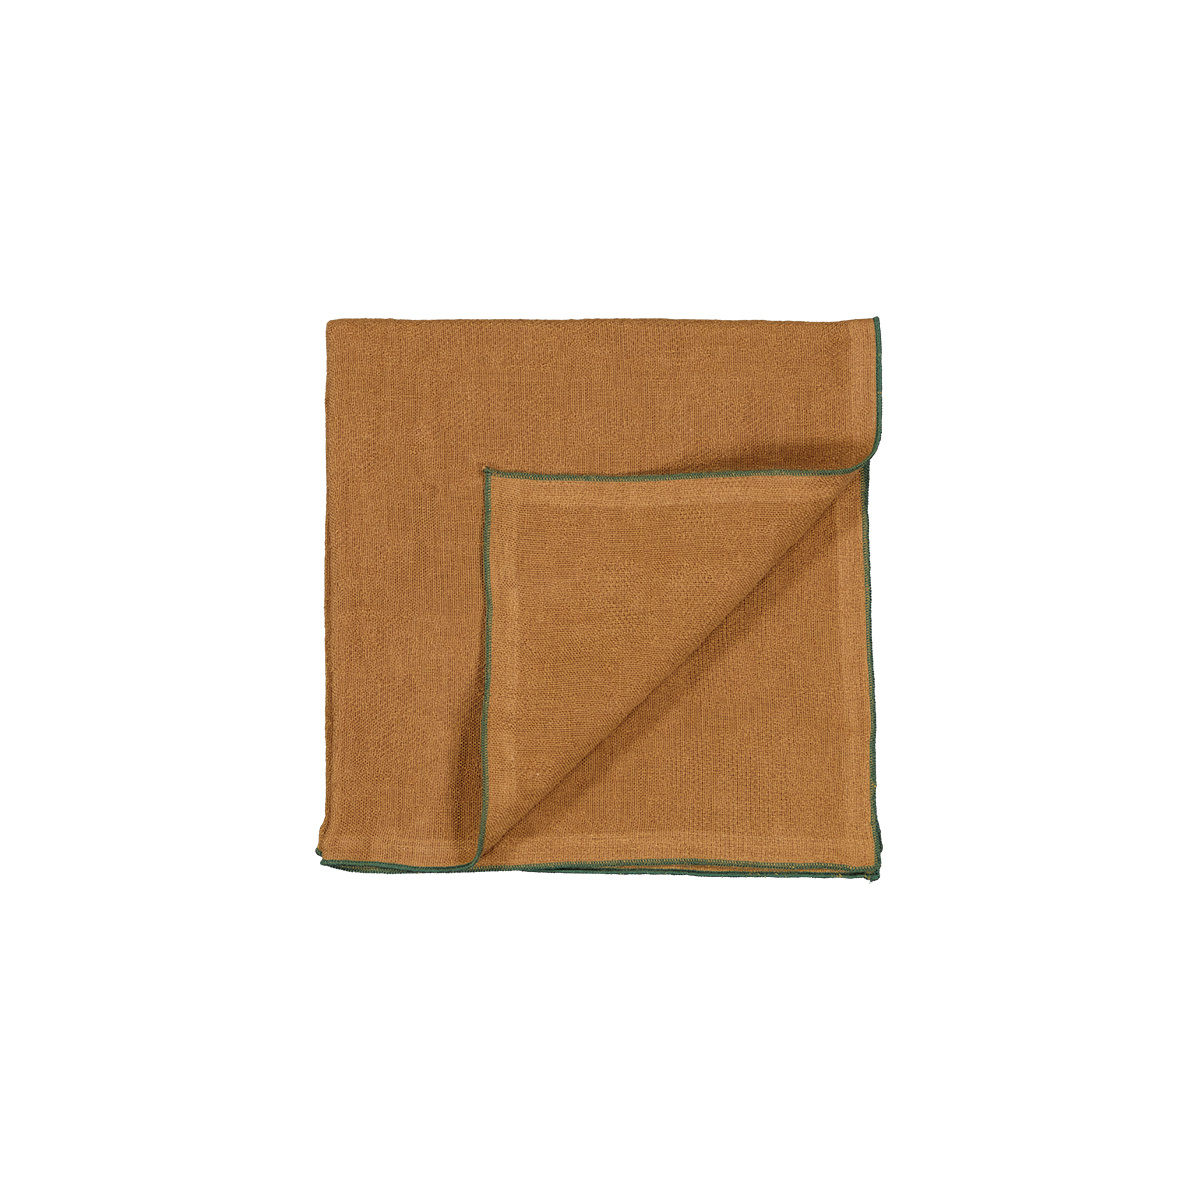 Serviette de table Tavola caramel